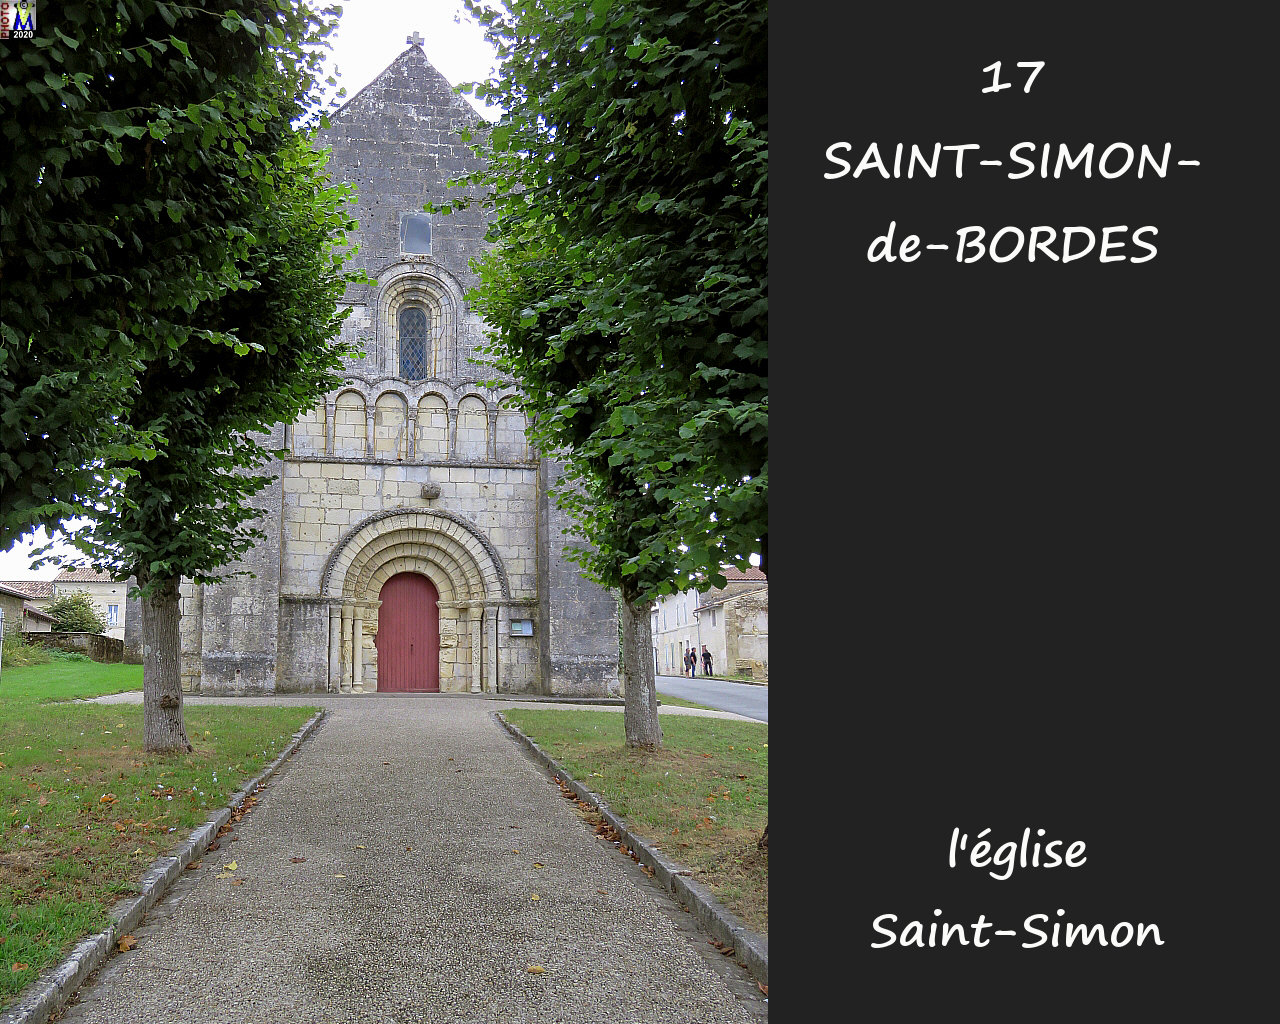 17StSIMON-BORDES_eglise_1002.jpg